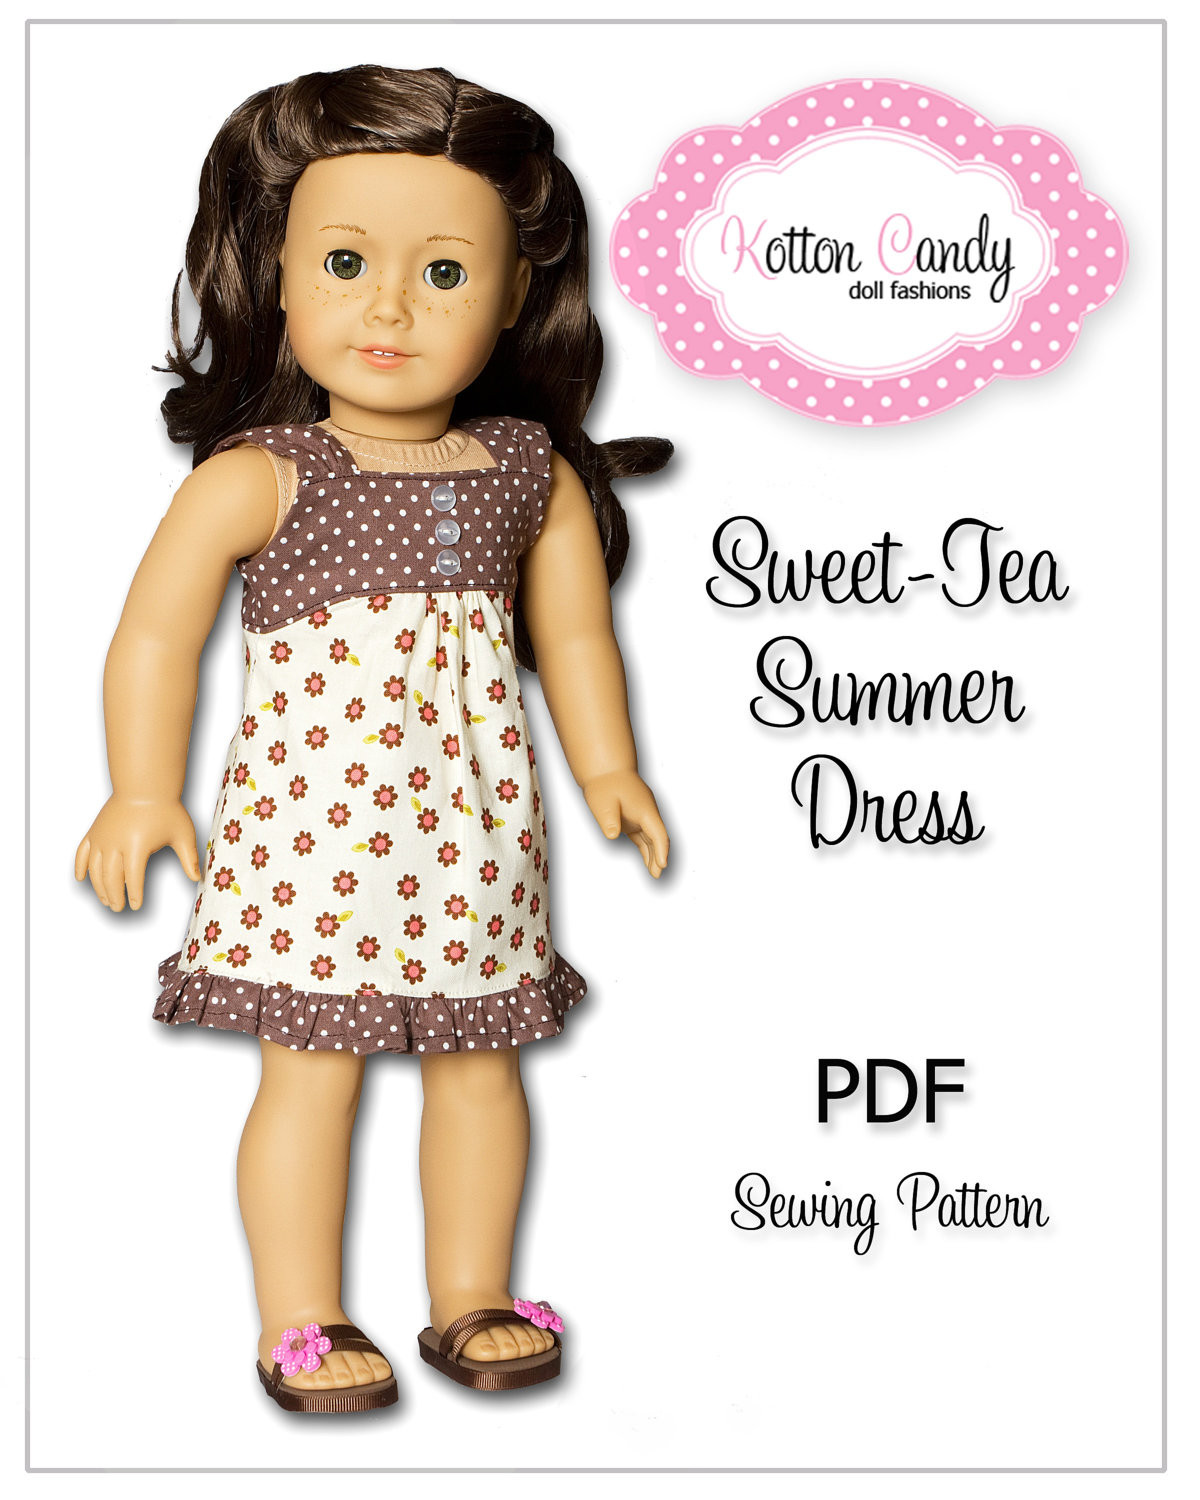 Awesome Pdf Sewing Pattern for 18 Inch American Girl Doll Clothes American Girl Doll Patterns Of Delightful 40 Photos American Girl Doll Patterns